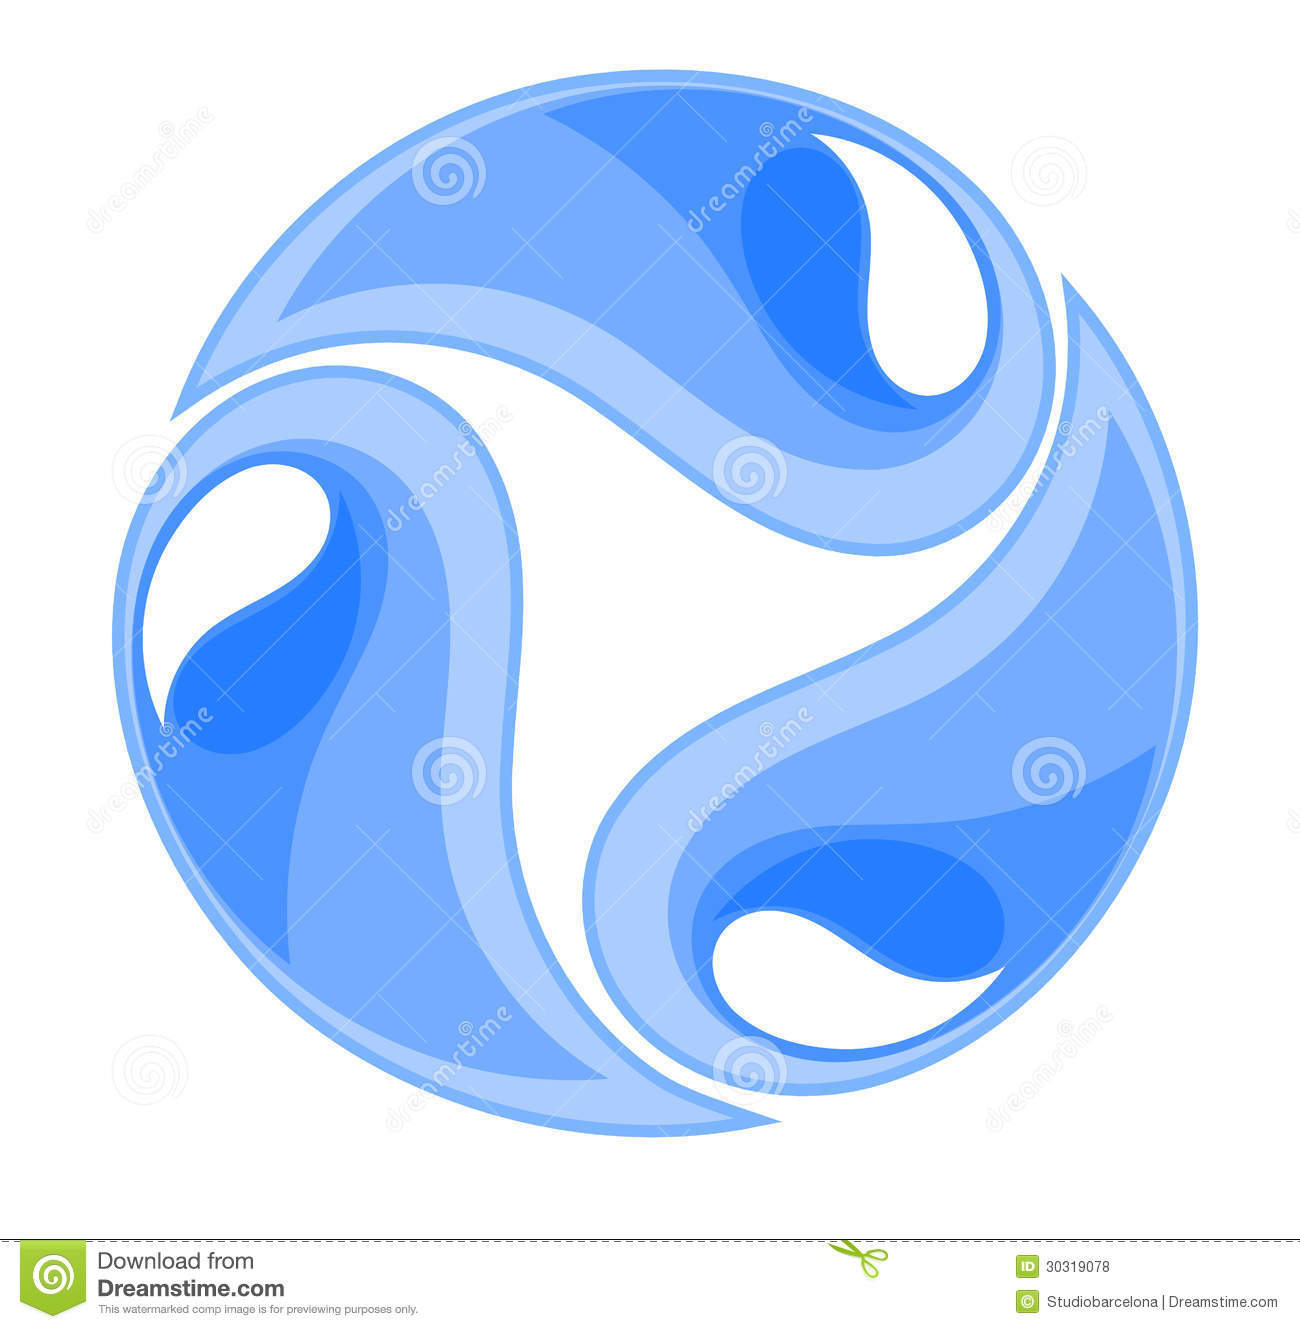 Water Symbol Royalty Free Stock Photos - Image: 30319078